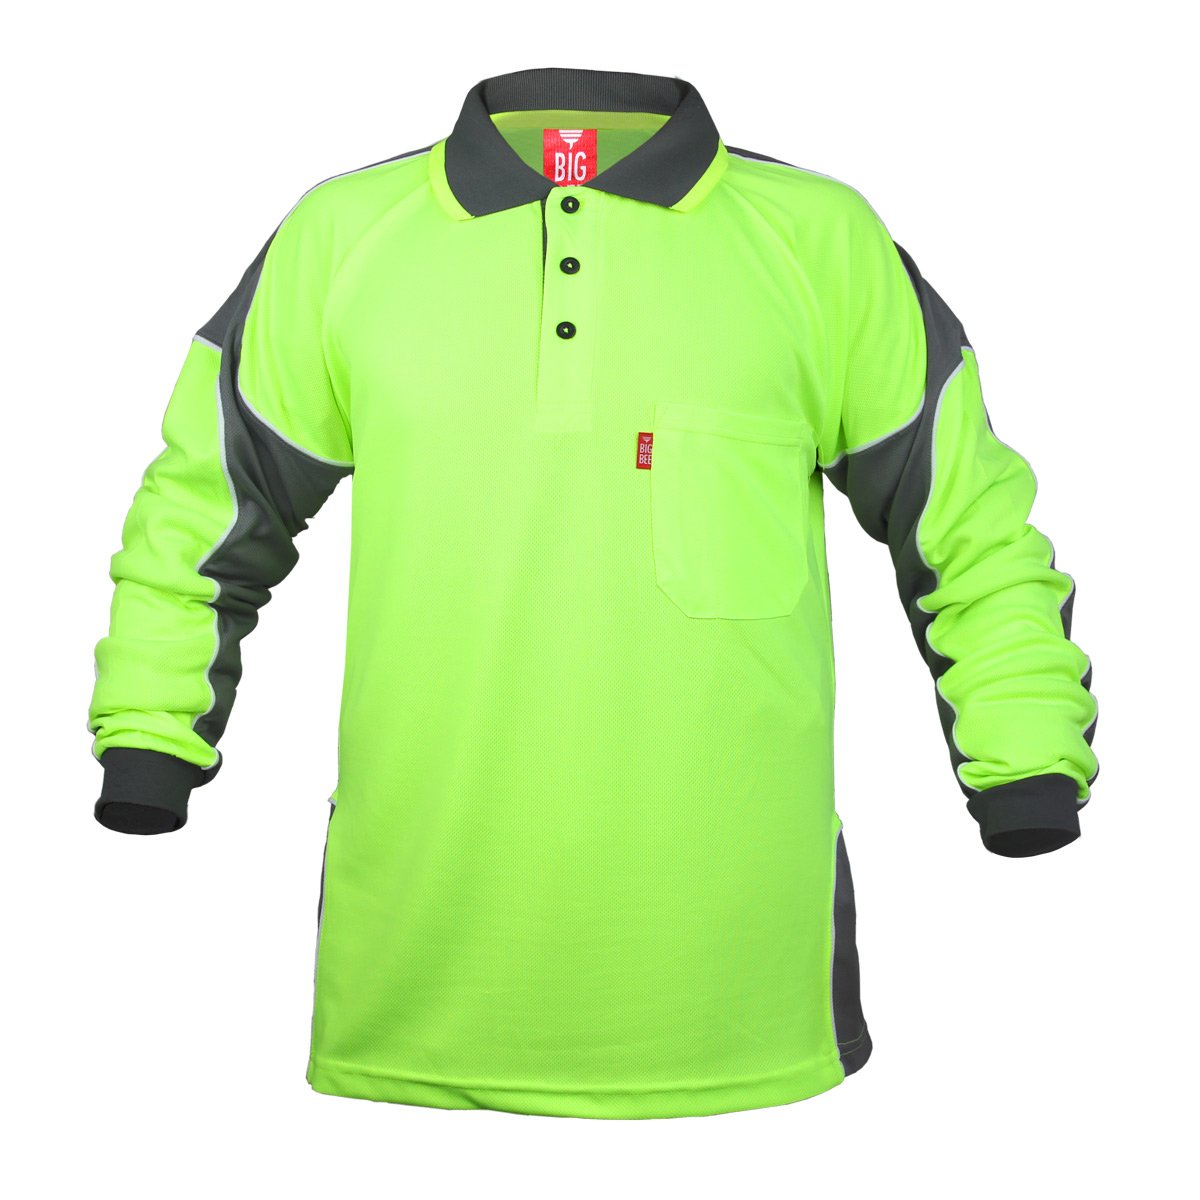 2Pack Hi Vis Polo Shirt Arm Panel With Piing Fluoro Work wear Cool Dry Long Sleeve by BIG BEE (Image #2)